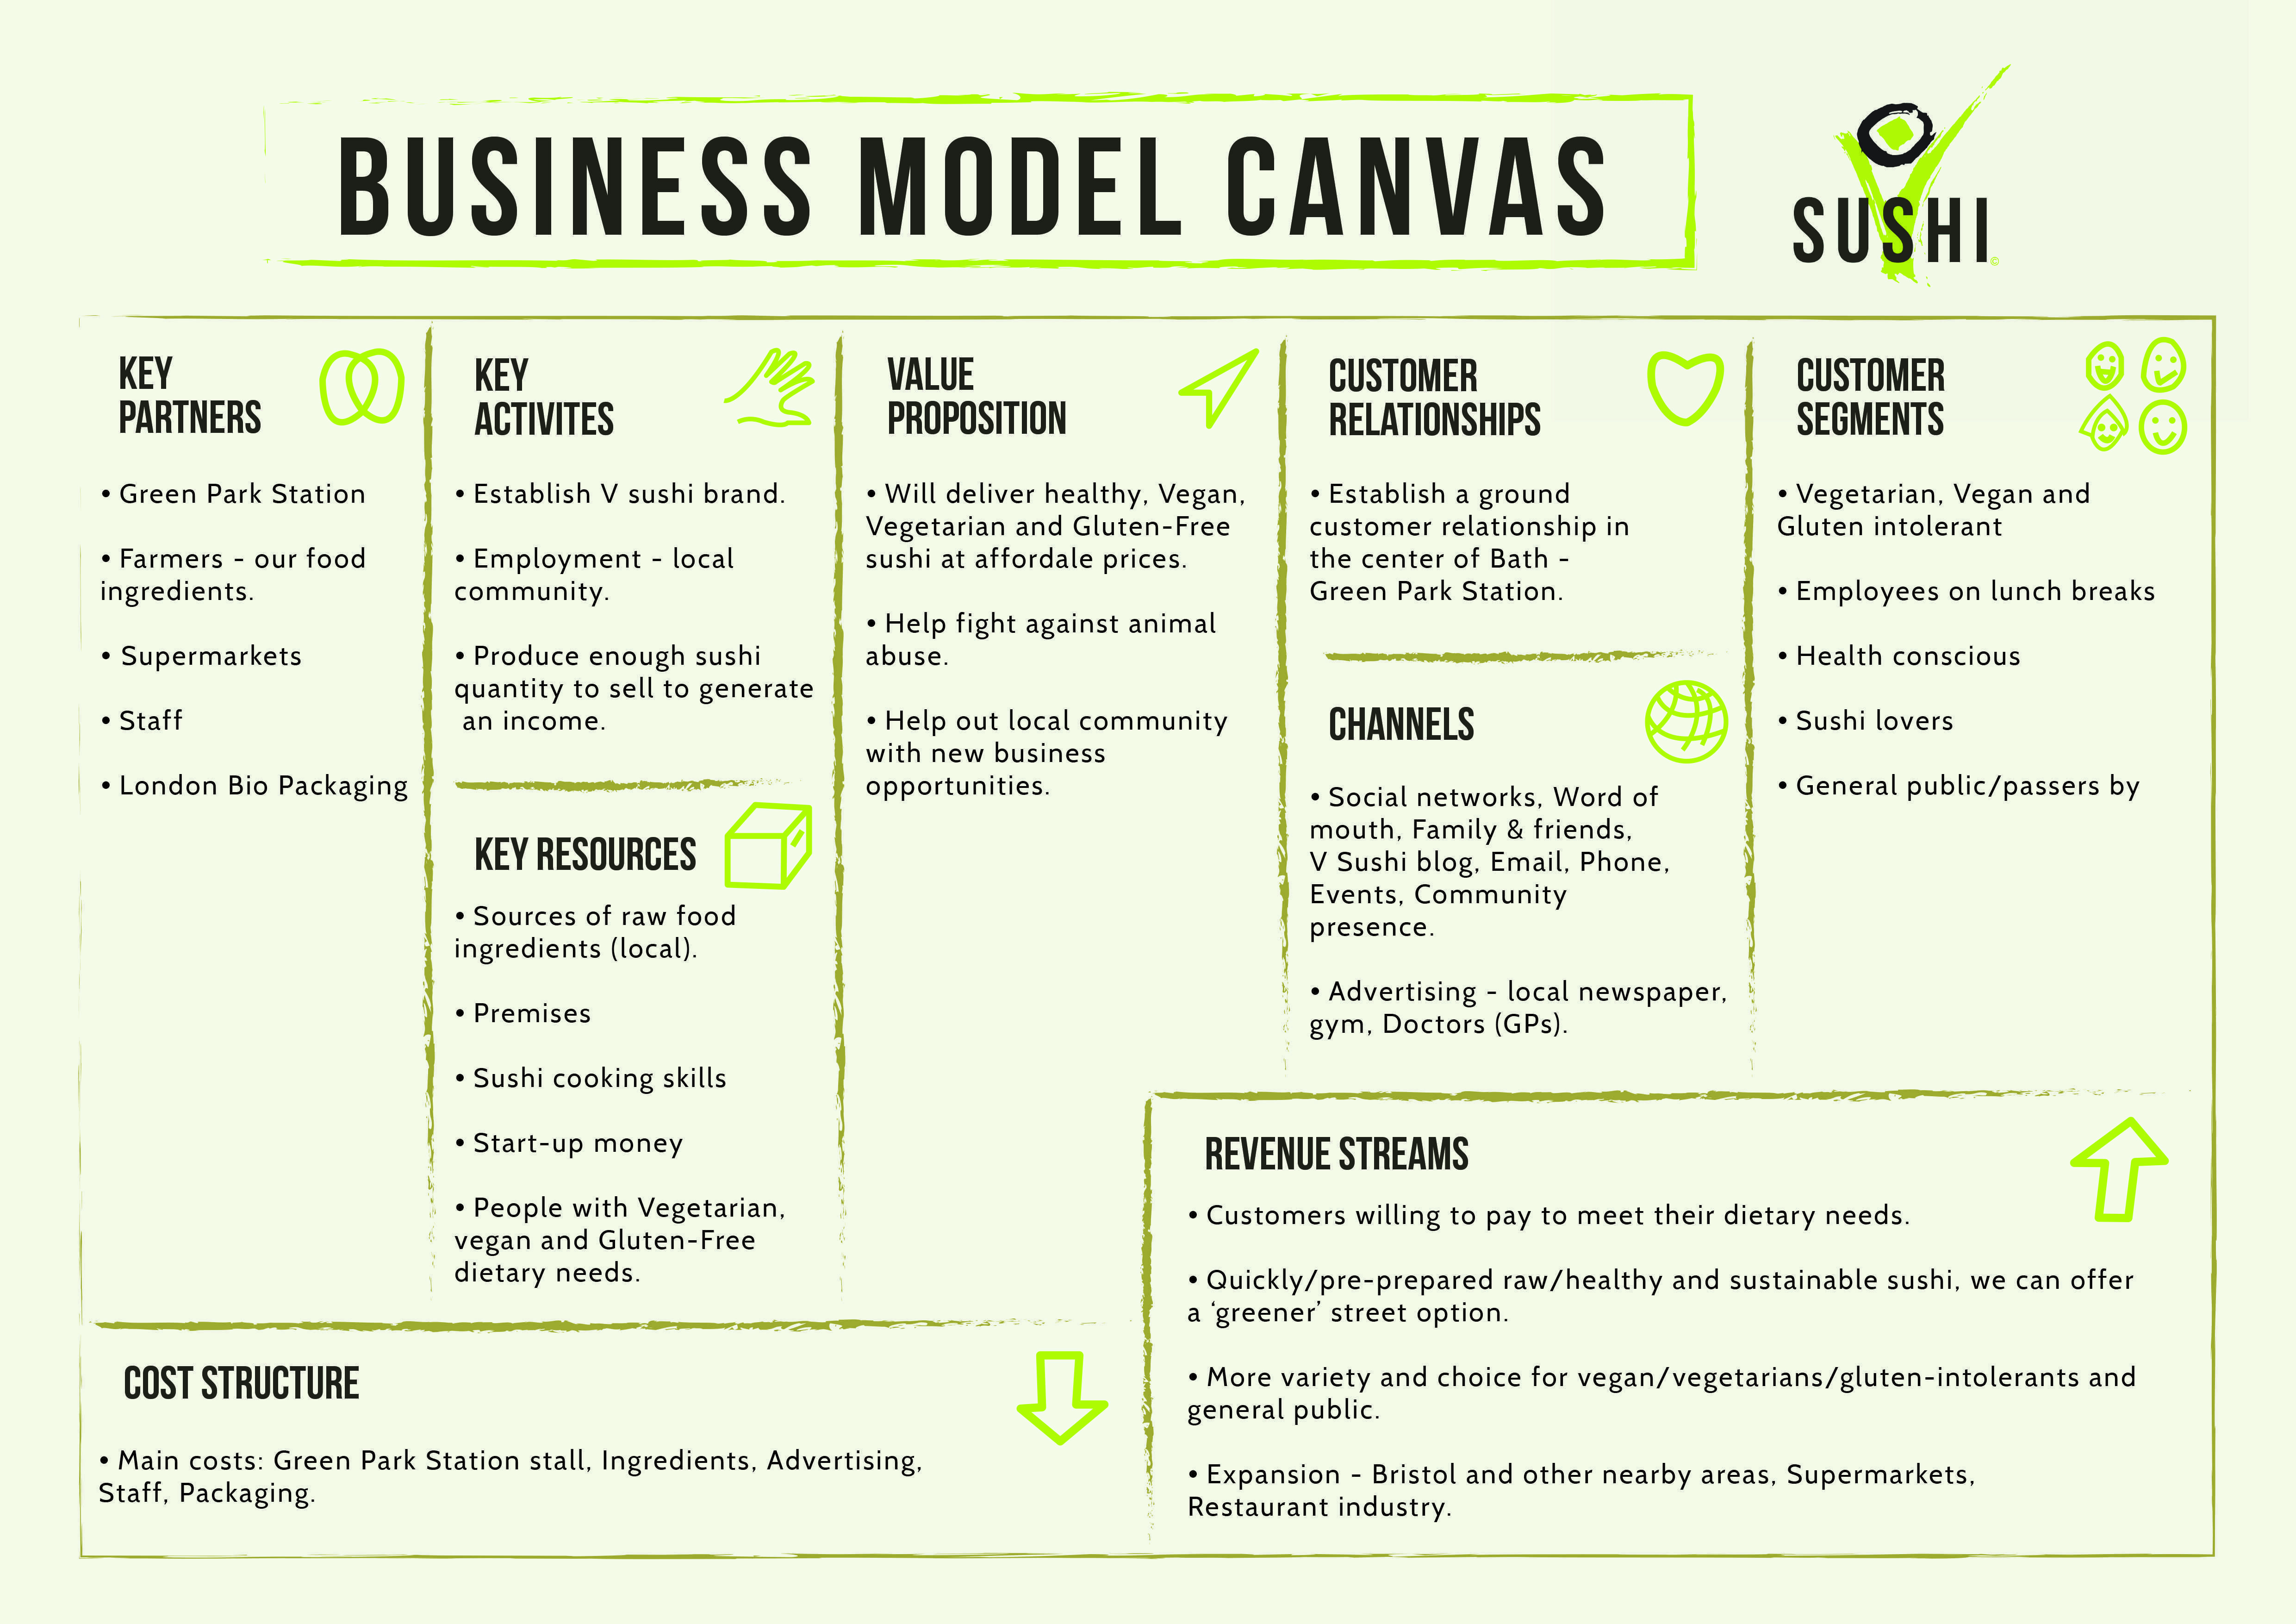 Business Model Canvas For Vegan Sushi Company Concept Business Model Canvas Examples Business Model Canvas Business Canvas